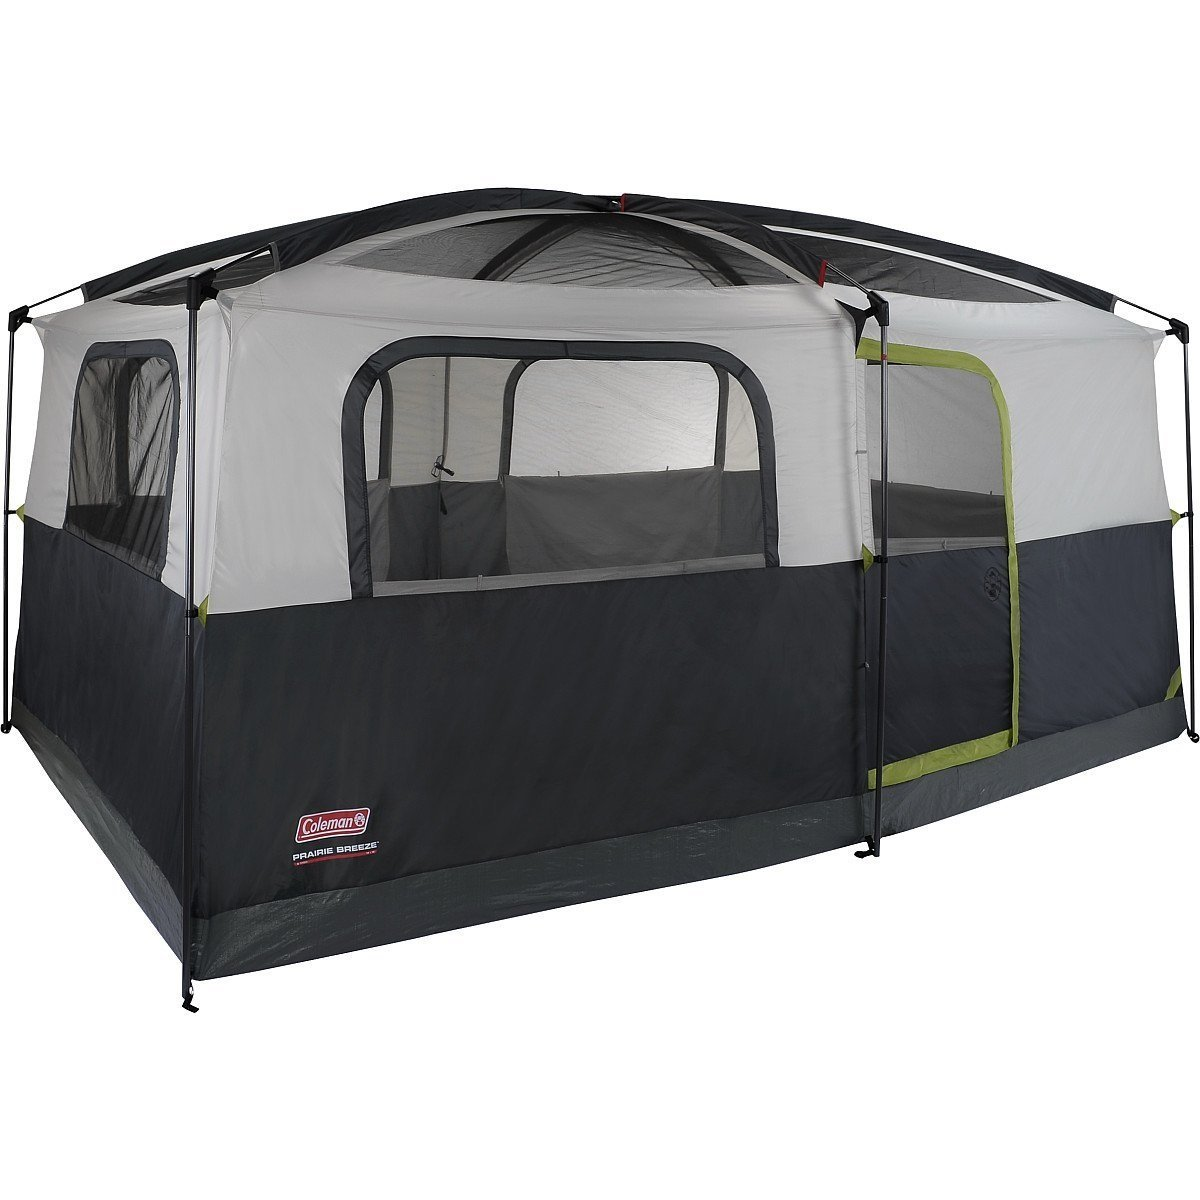 Coleman Prairie Breeze 9-Person Cabin Tent, Black and Grey Finish by Coleman (Image #1)